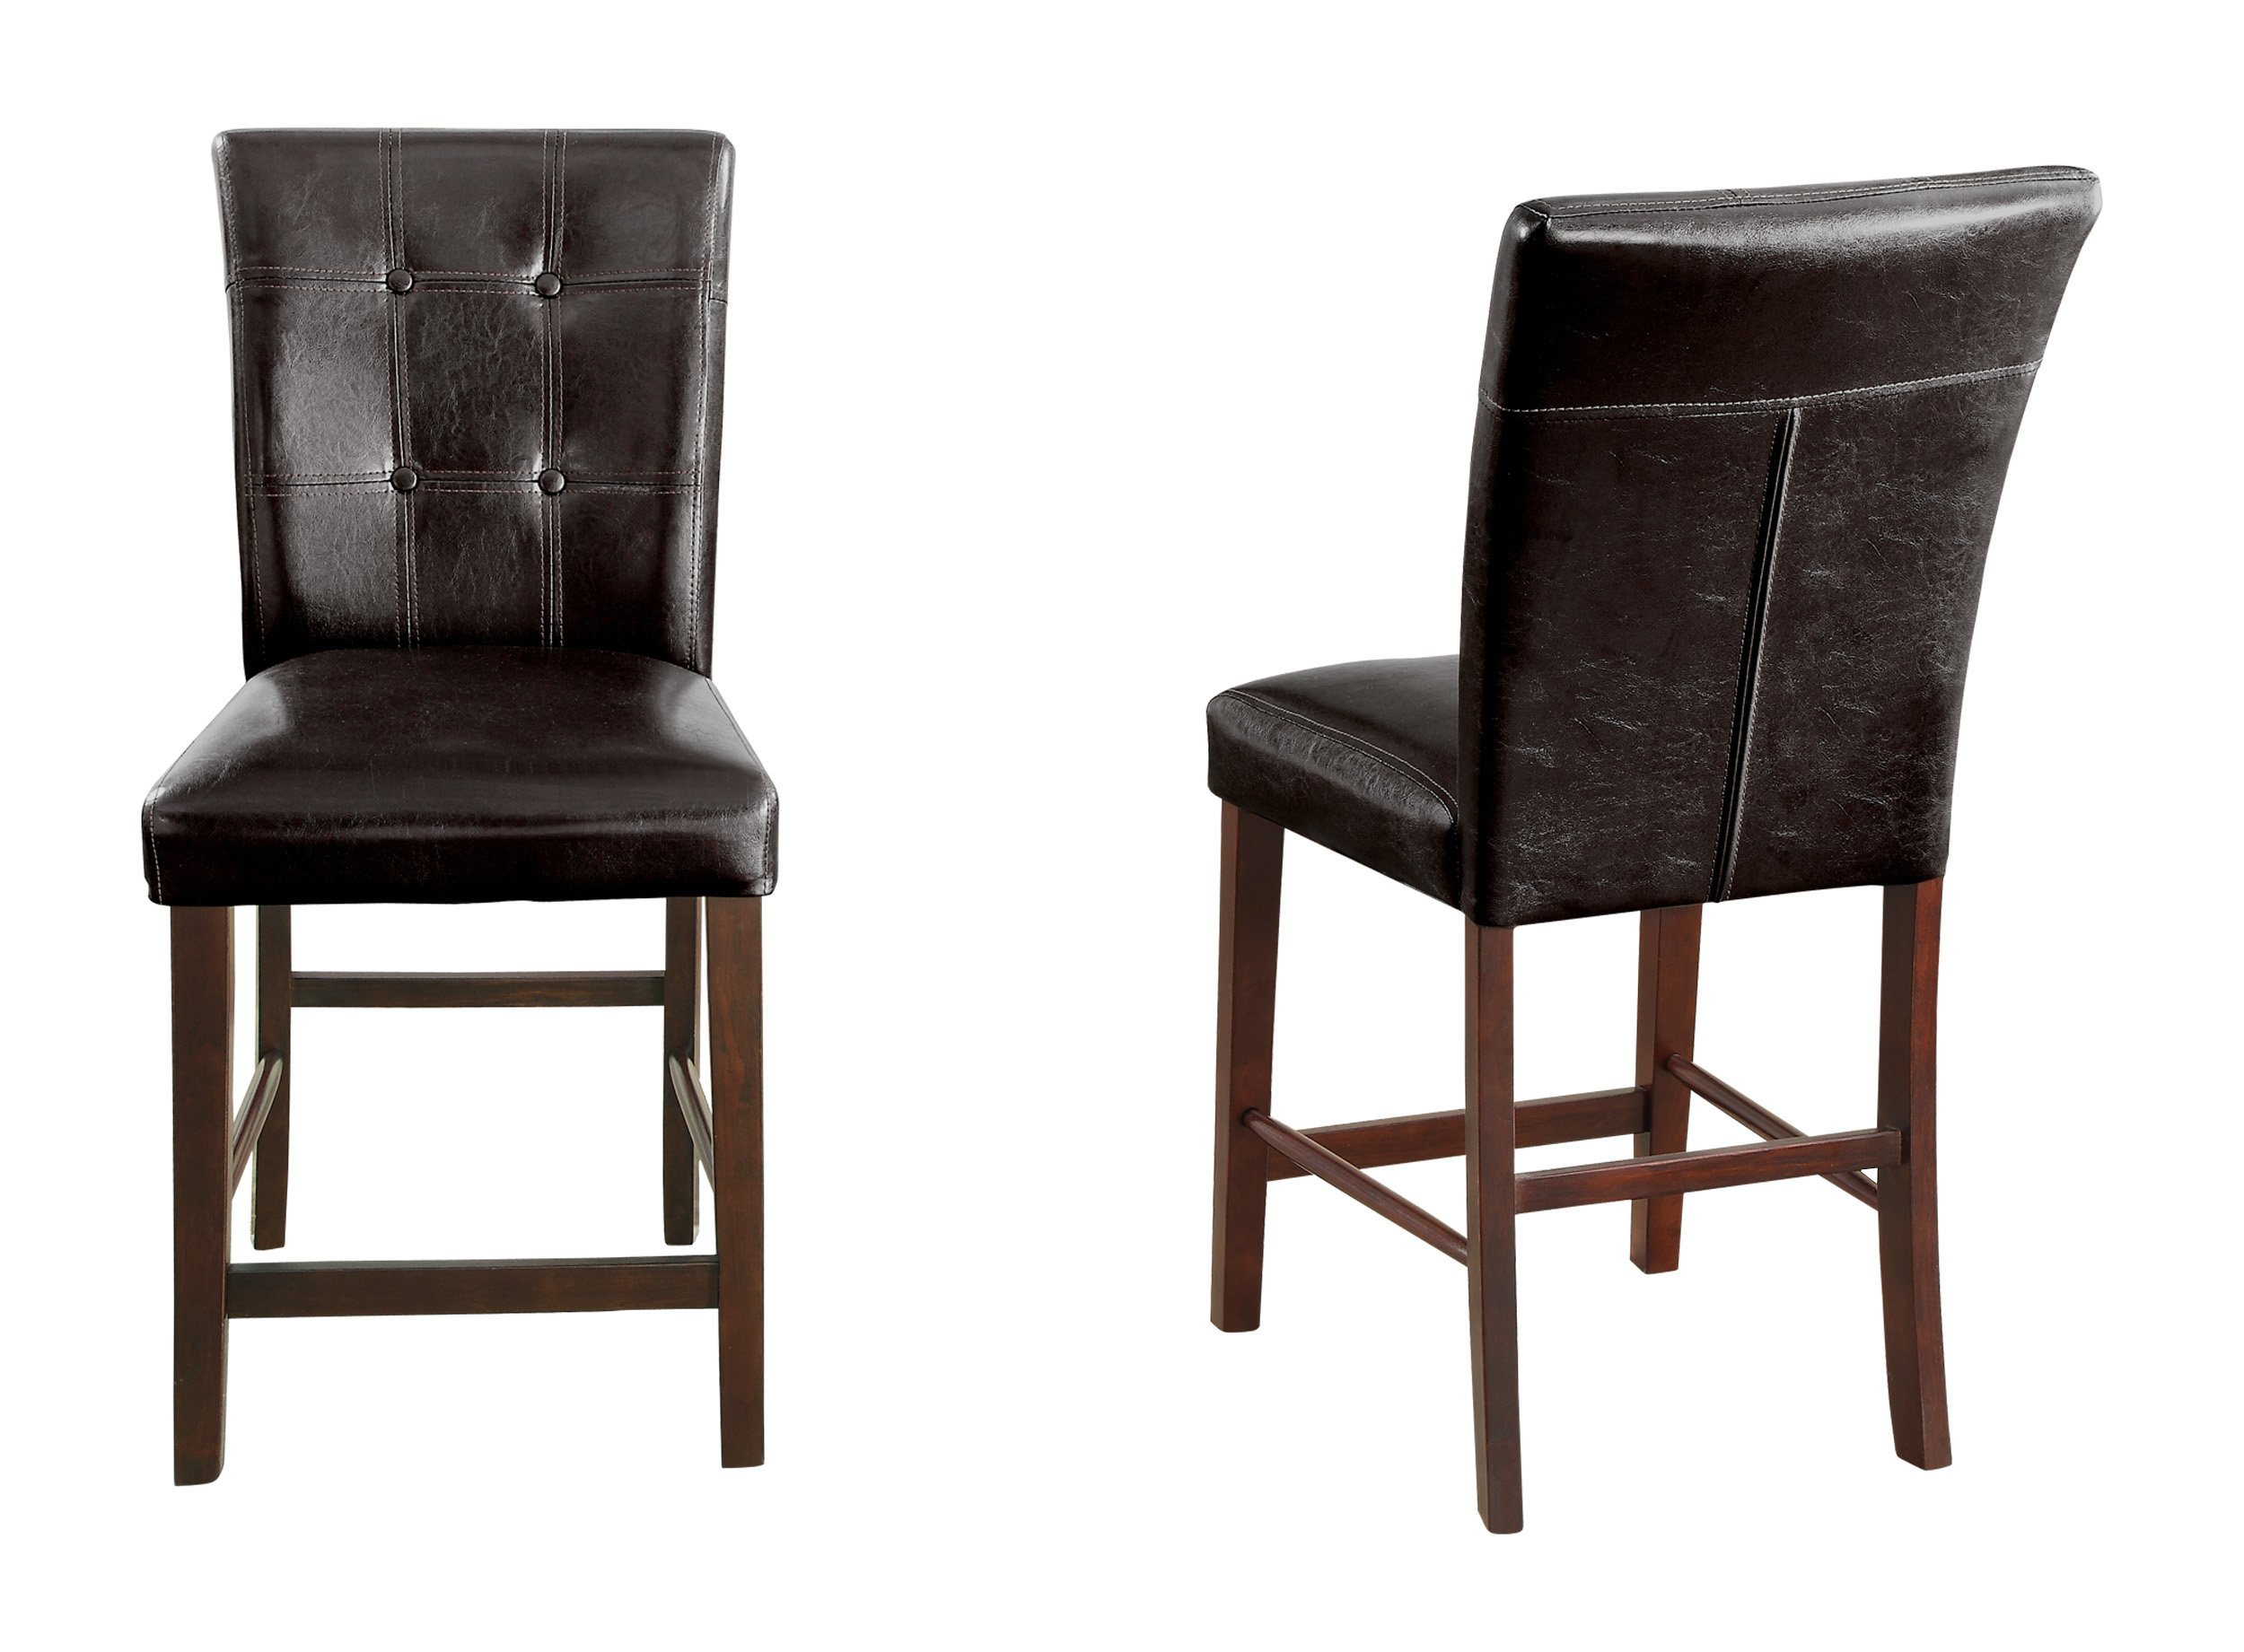 Homelegance 2456-24 Counter Height Chair Upholstered, Set of 2